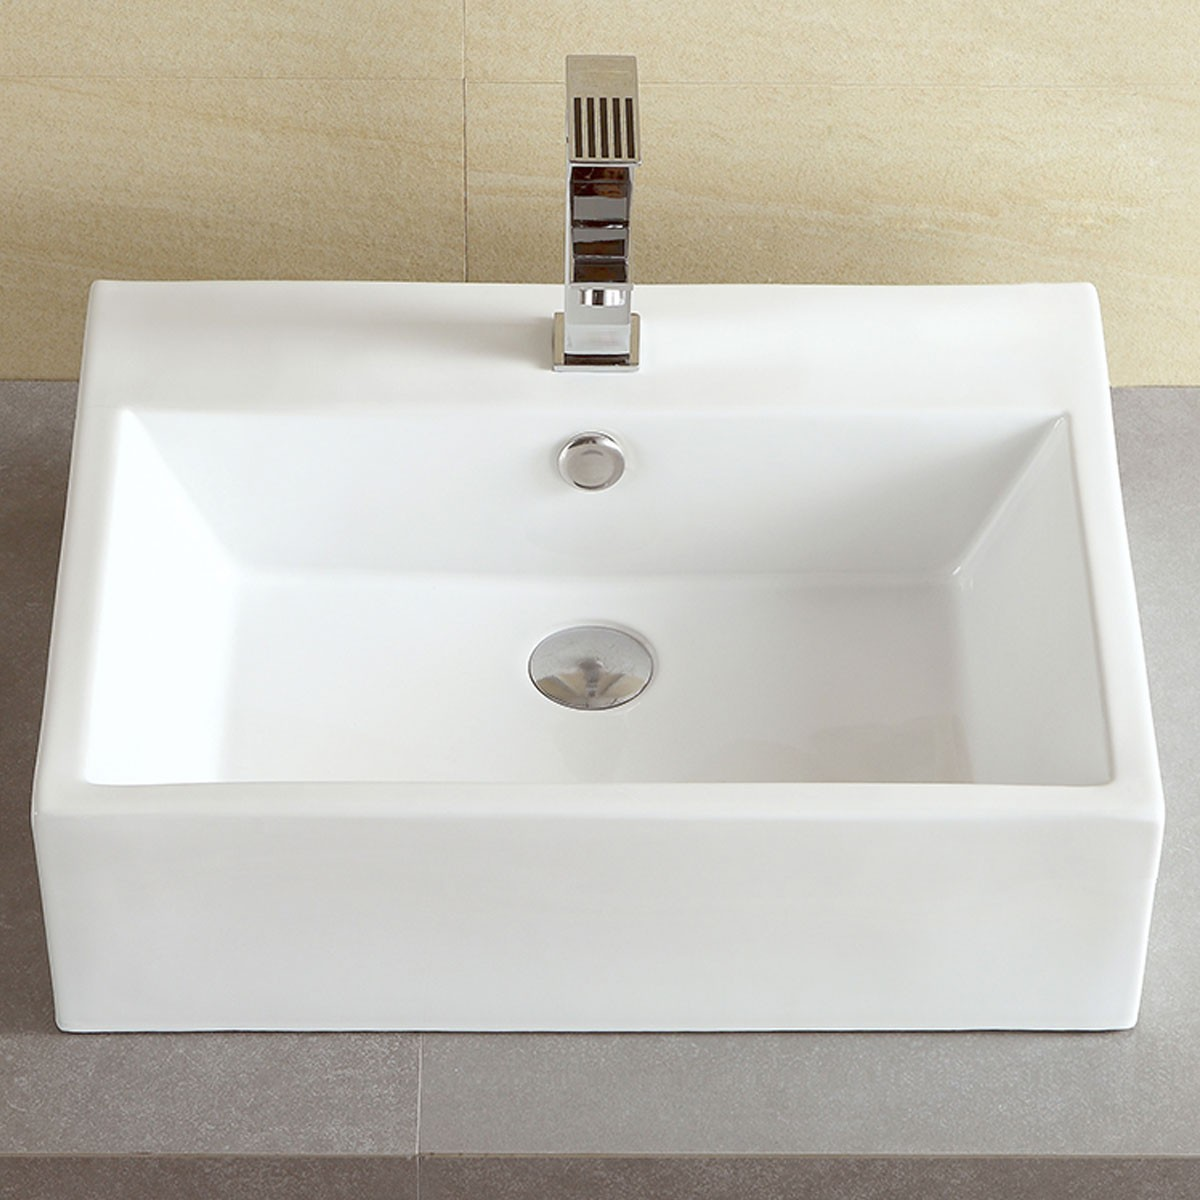 Decoraport White Rectangle Ceramic Above Counter Basin (CL-1094)